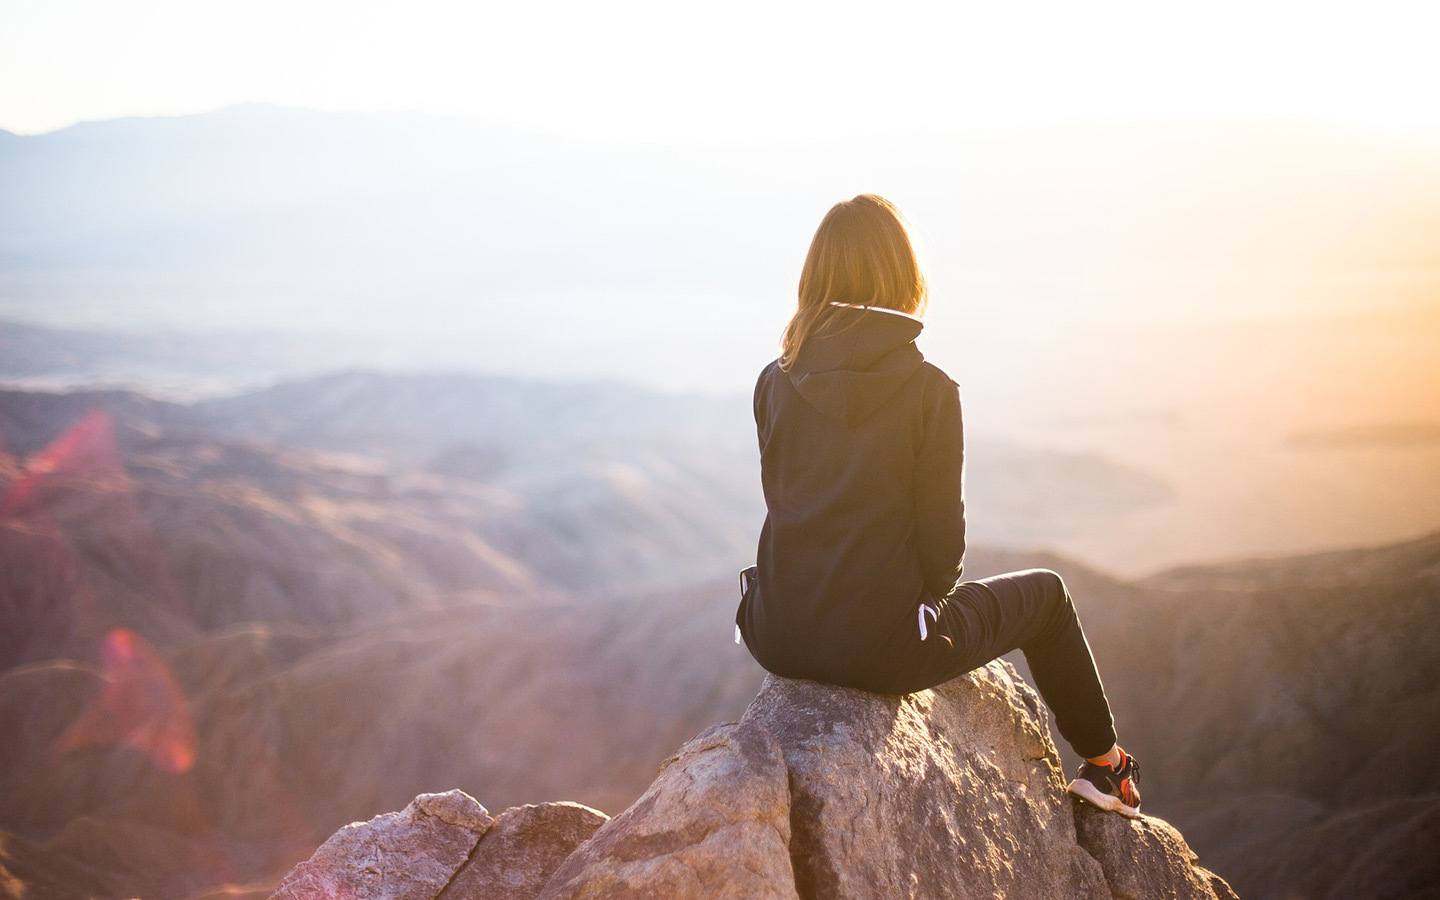 Going solo: Inspirational trip ideas for solo travellers